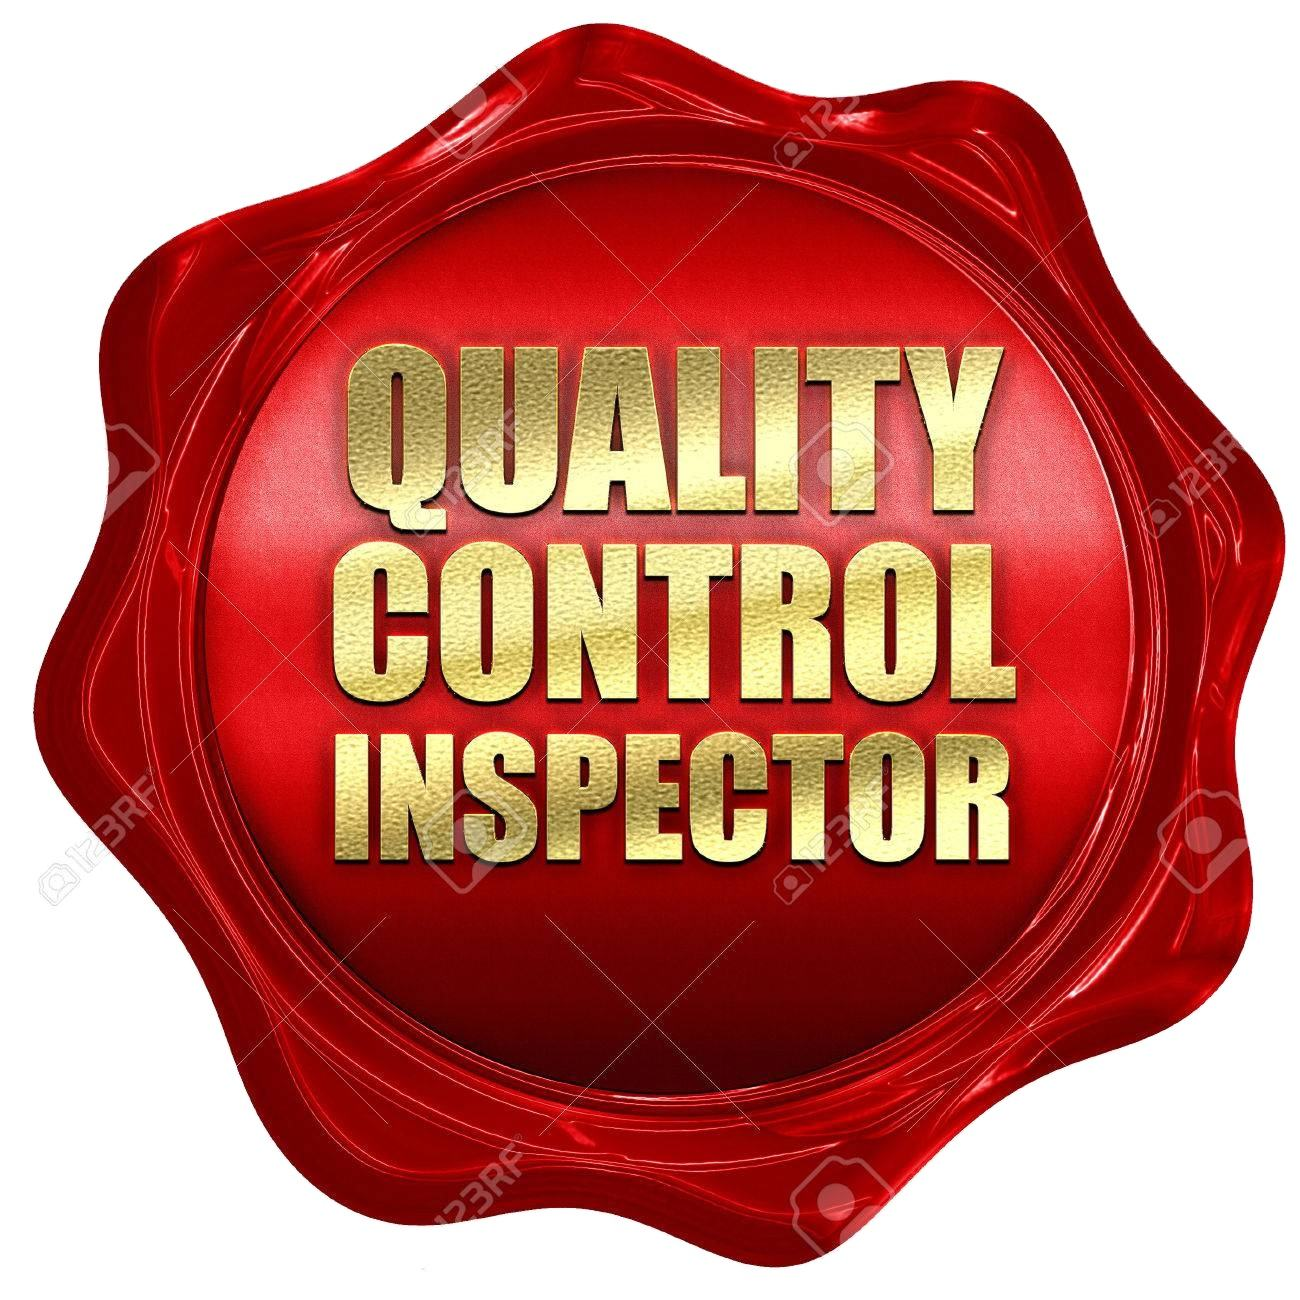 quality control service/factory audit/inspector for quality inspection